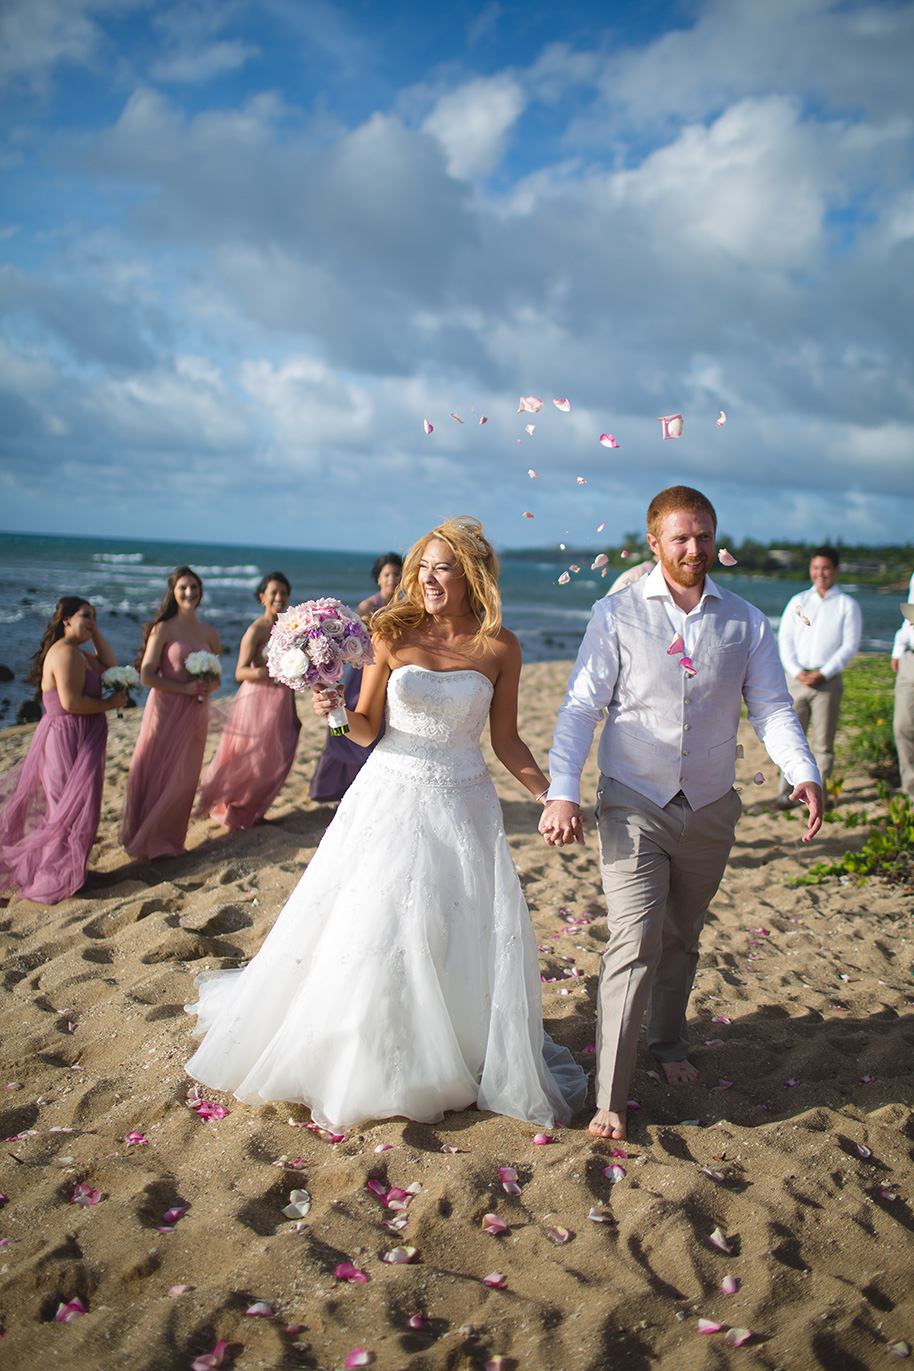 Maui-Beach-Wedding-042816-19